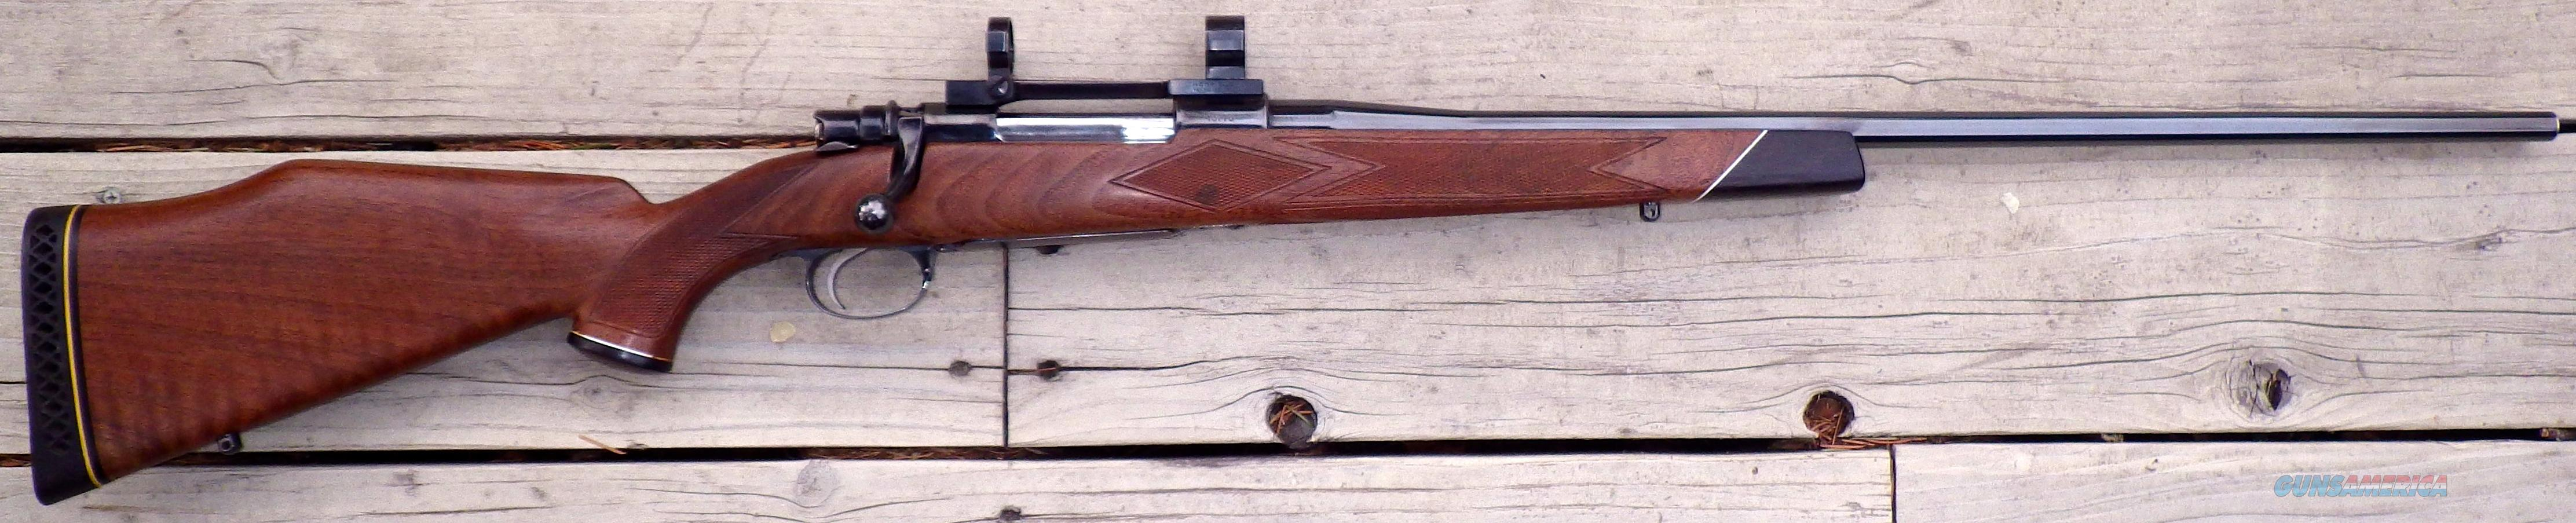 Weatherby FN Mauser .300 Weatherby Magnum, 1960, possibly unfired, German  Guns > Rifles > Weatherby Rifles > Sporting